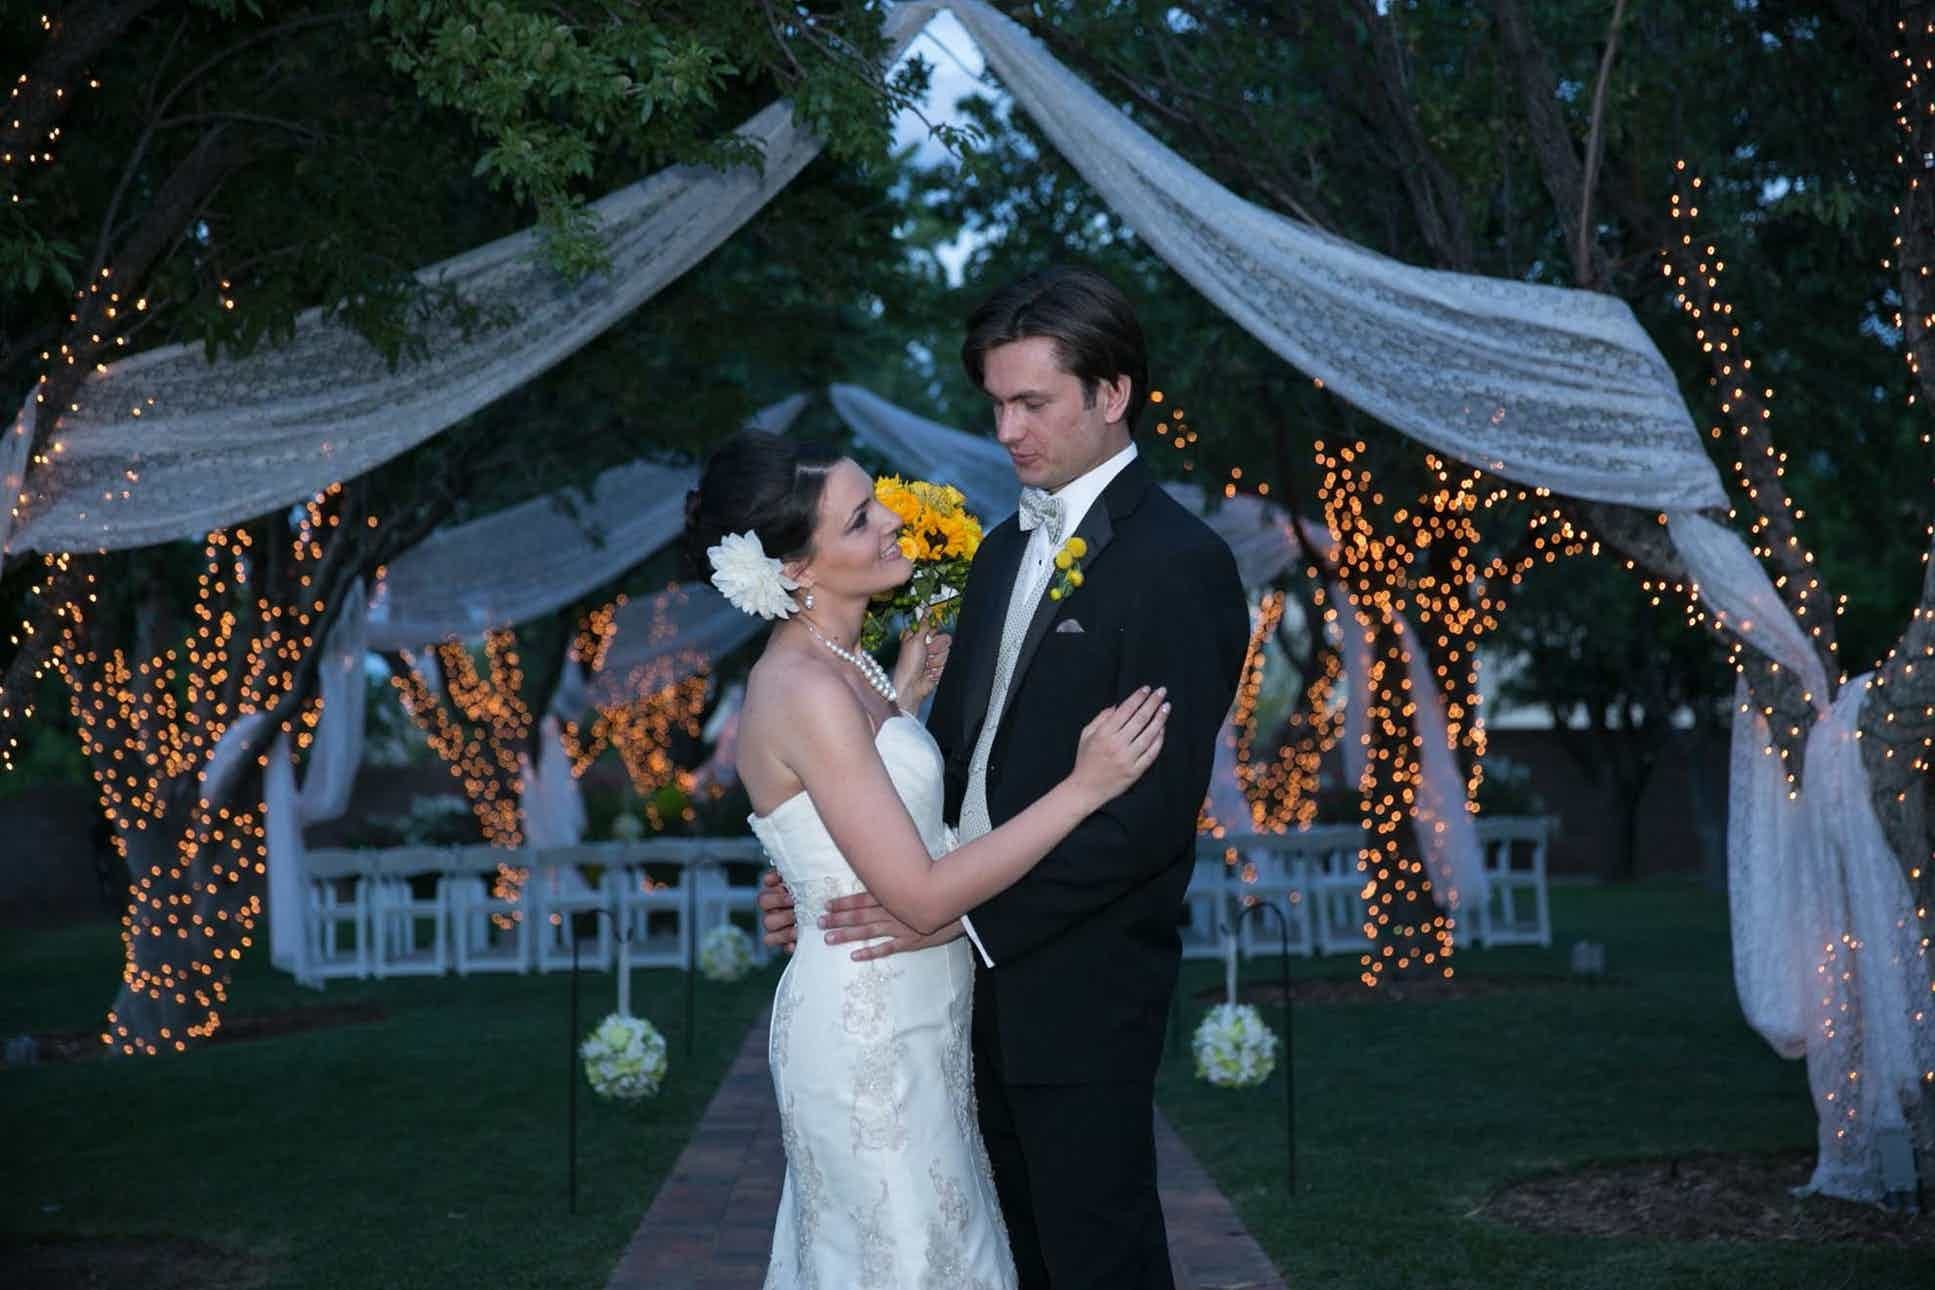 The Grove and other beautiful Las Vegas wedding venues